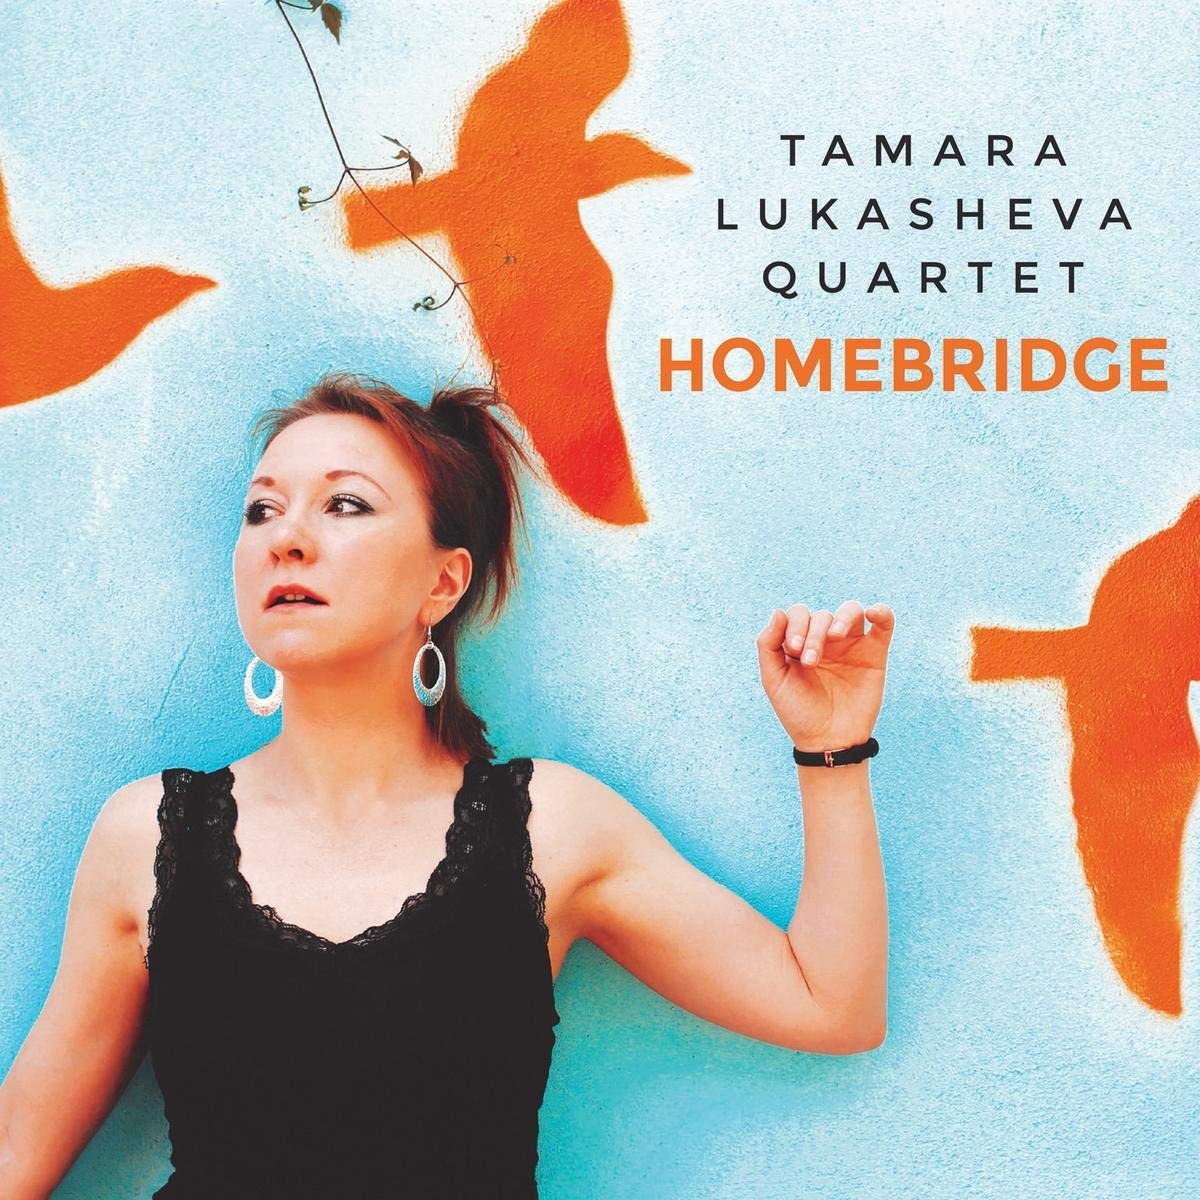 TAMARA LUKASHEVA - Homebridge cover